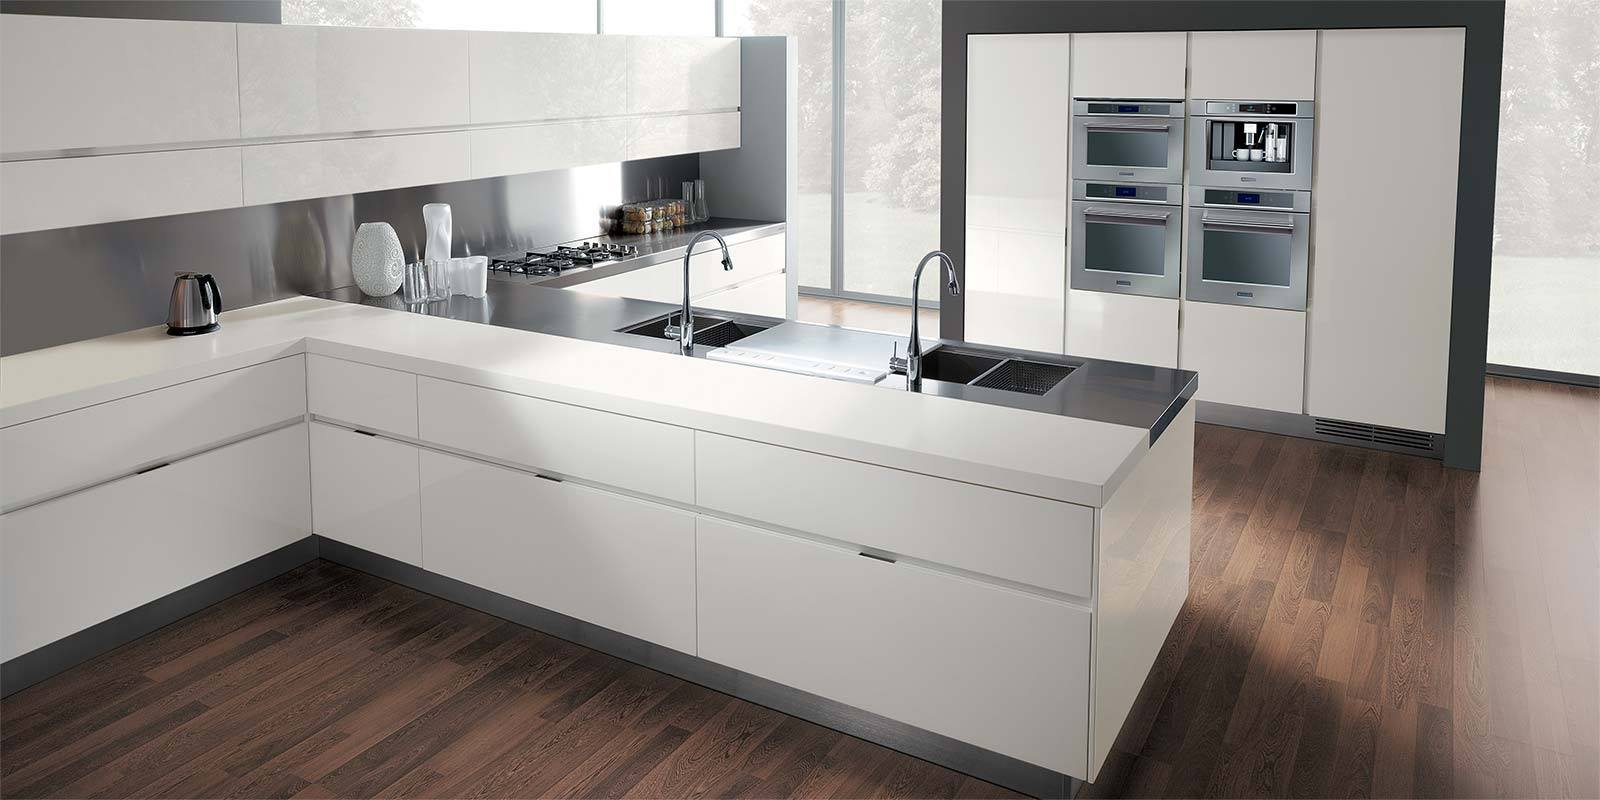 Cucine ernestomeda roma for Arredamento componibile